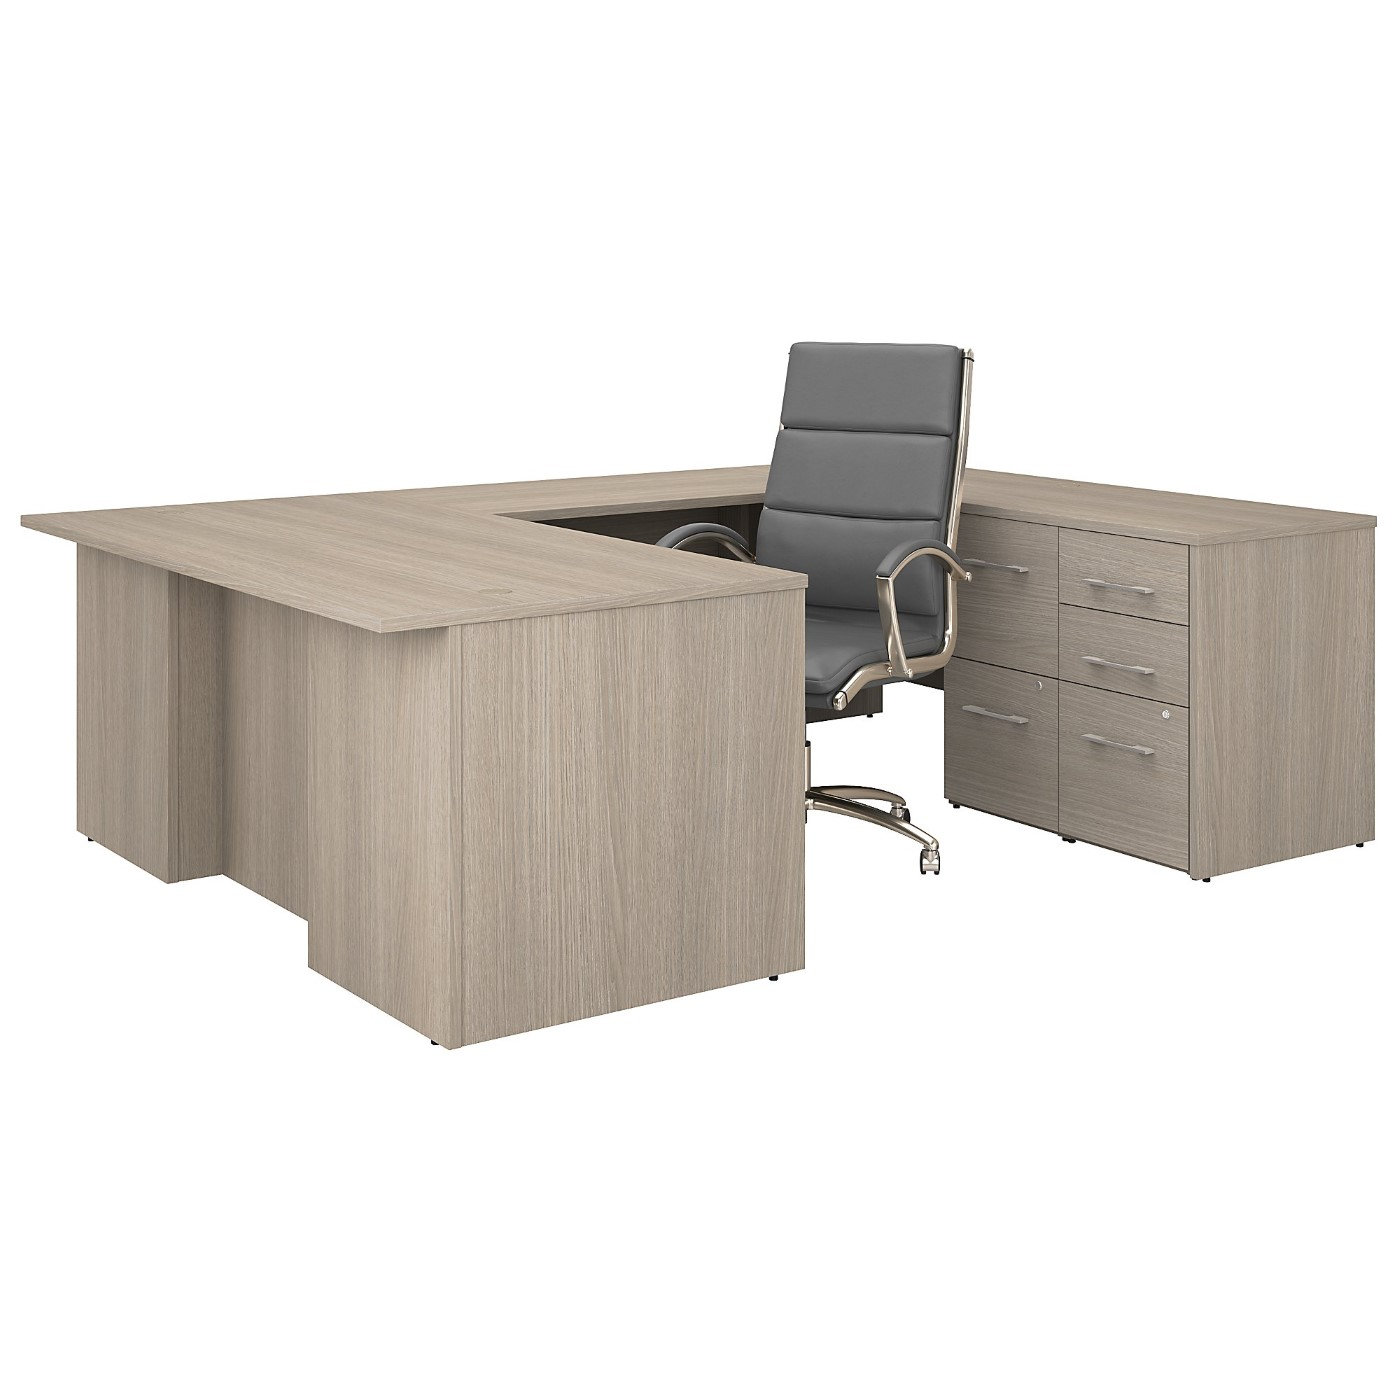 BUSH BUSINESS FURNITURE OFFICE 500 72W U SHAPED EXECUTIVE DESK WITH DRAWERS AND HIGH BACK CHAIR SET. FREE SHIPPING